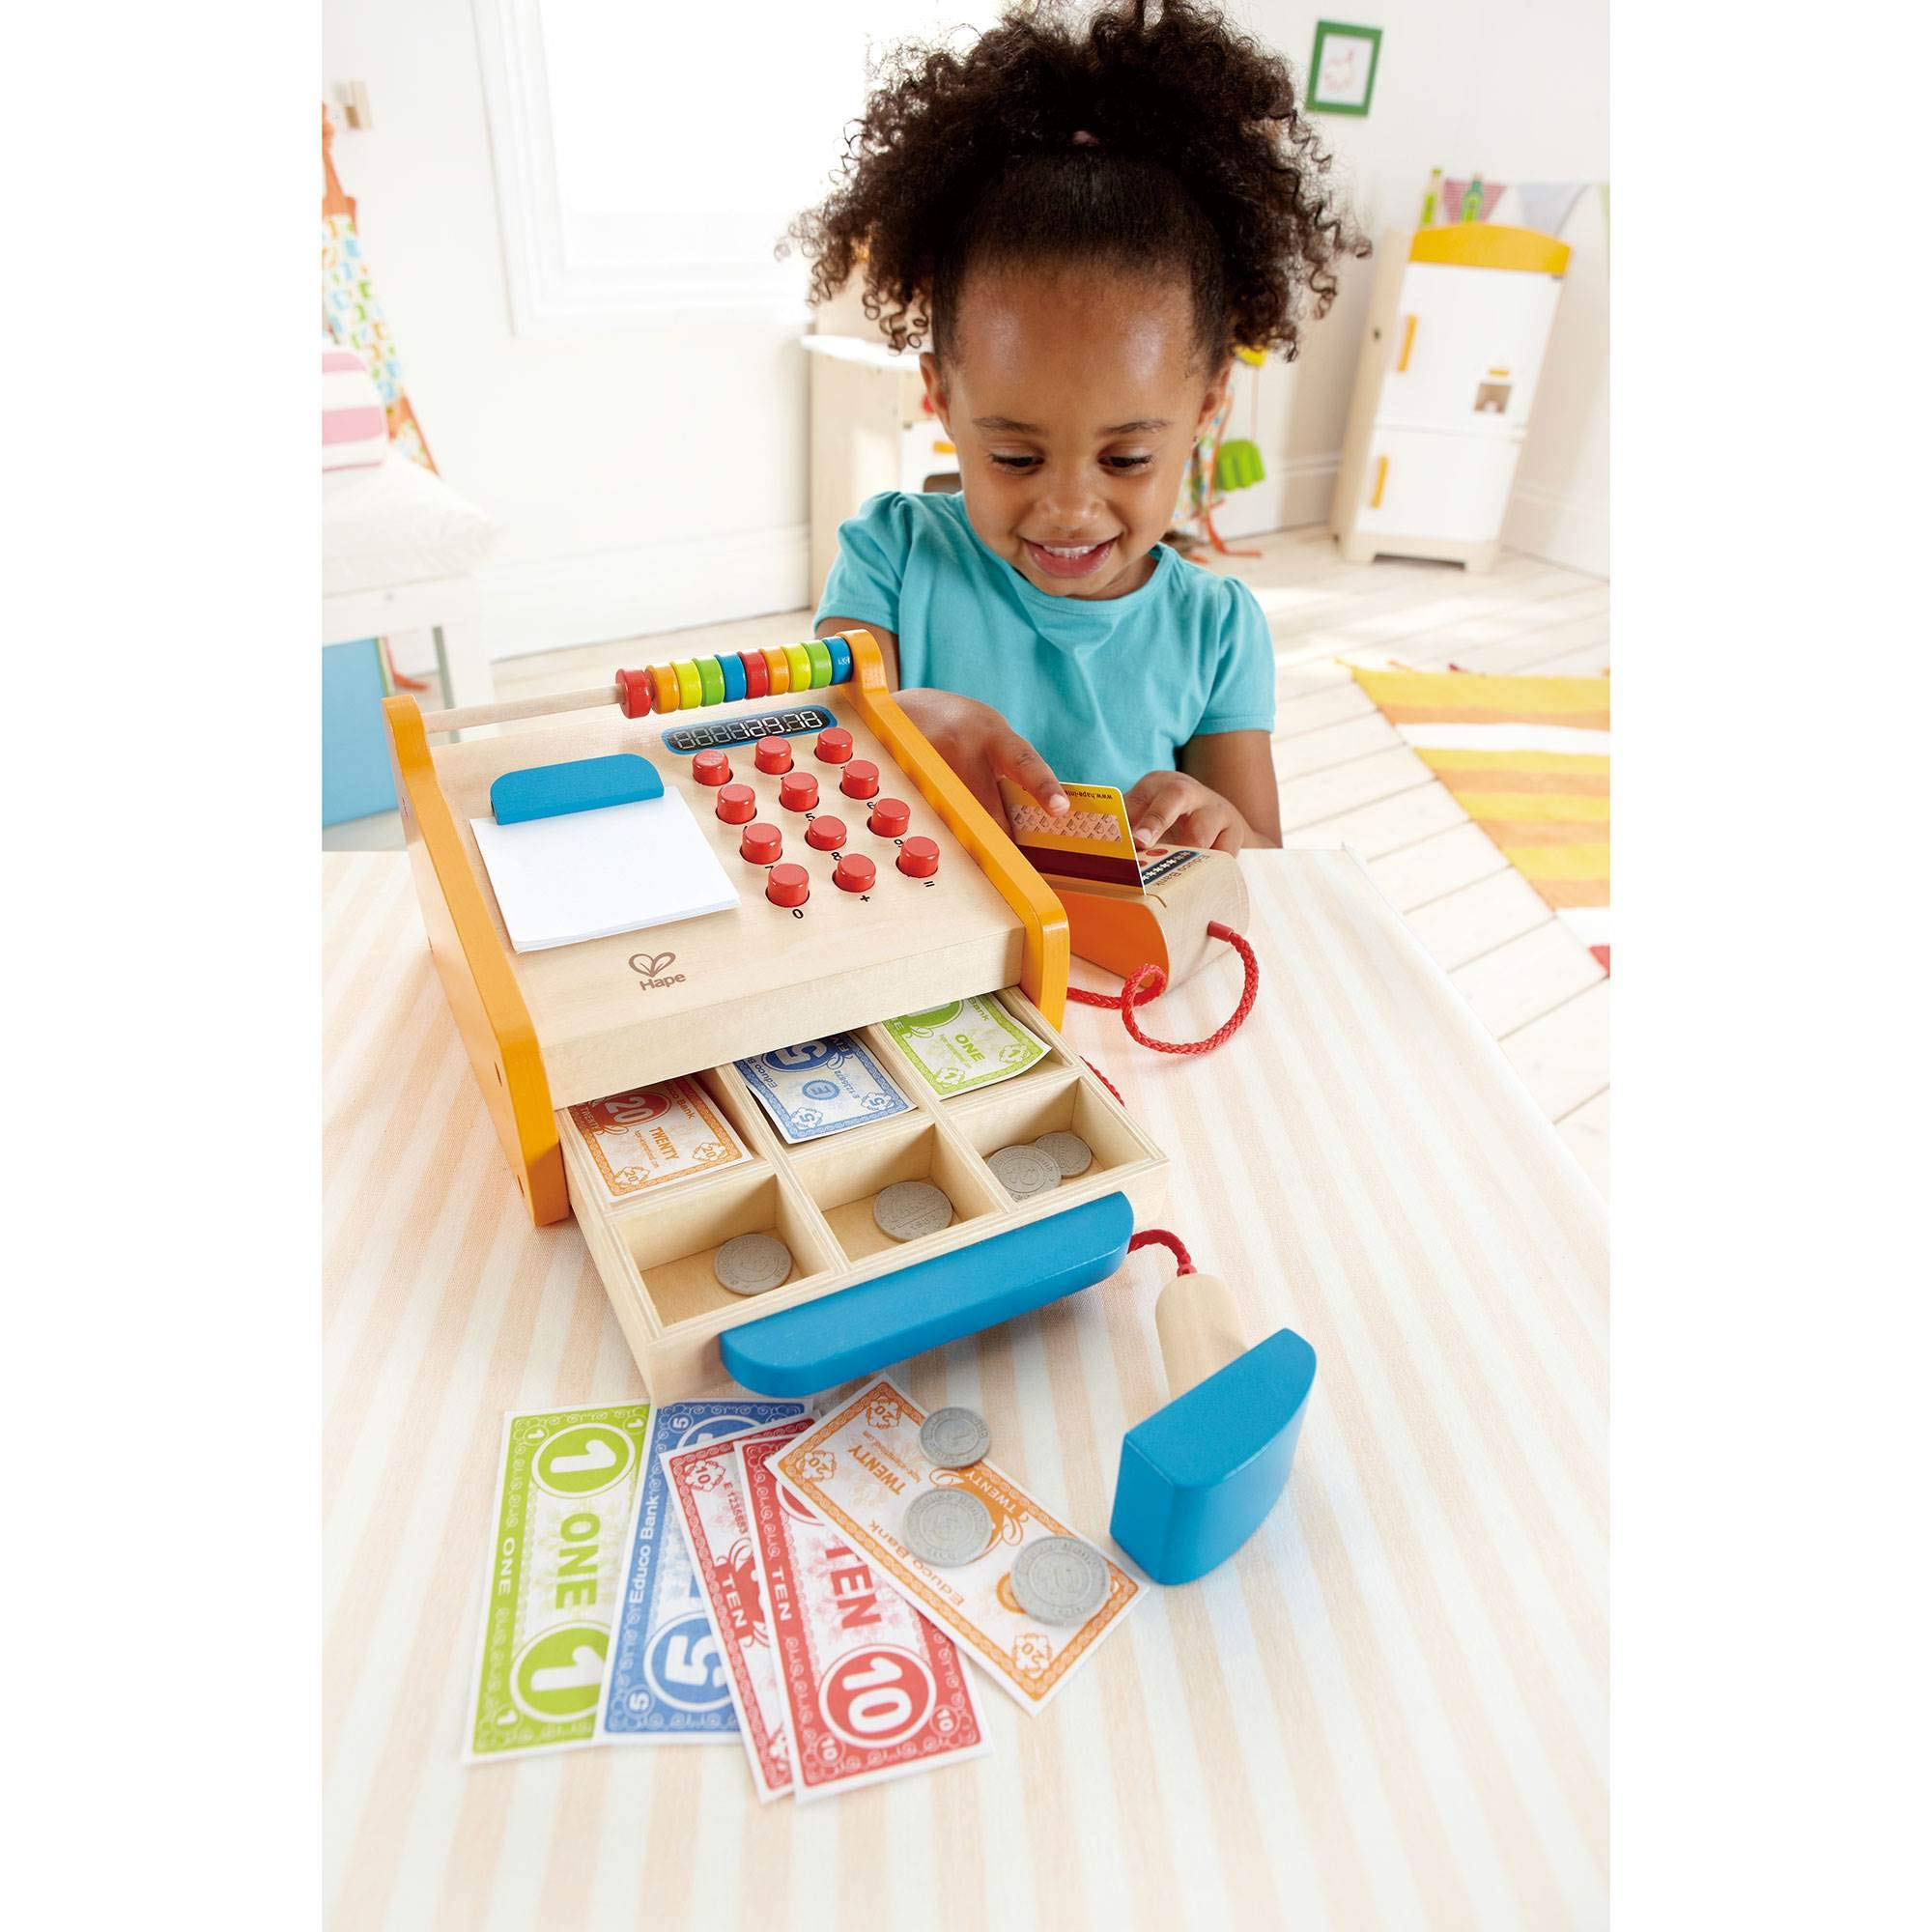 Hape Toys Kids Wooden Cash Register Pretend Playset Wooden Shopping Cart by Hape (Image #1)